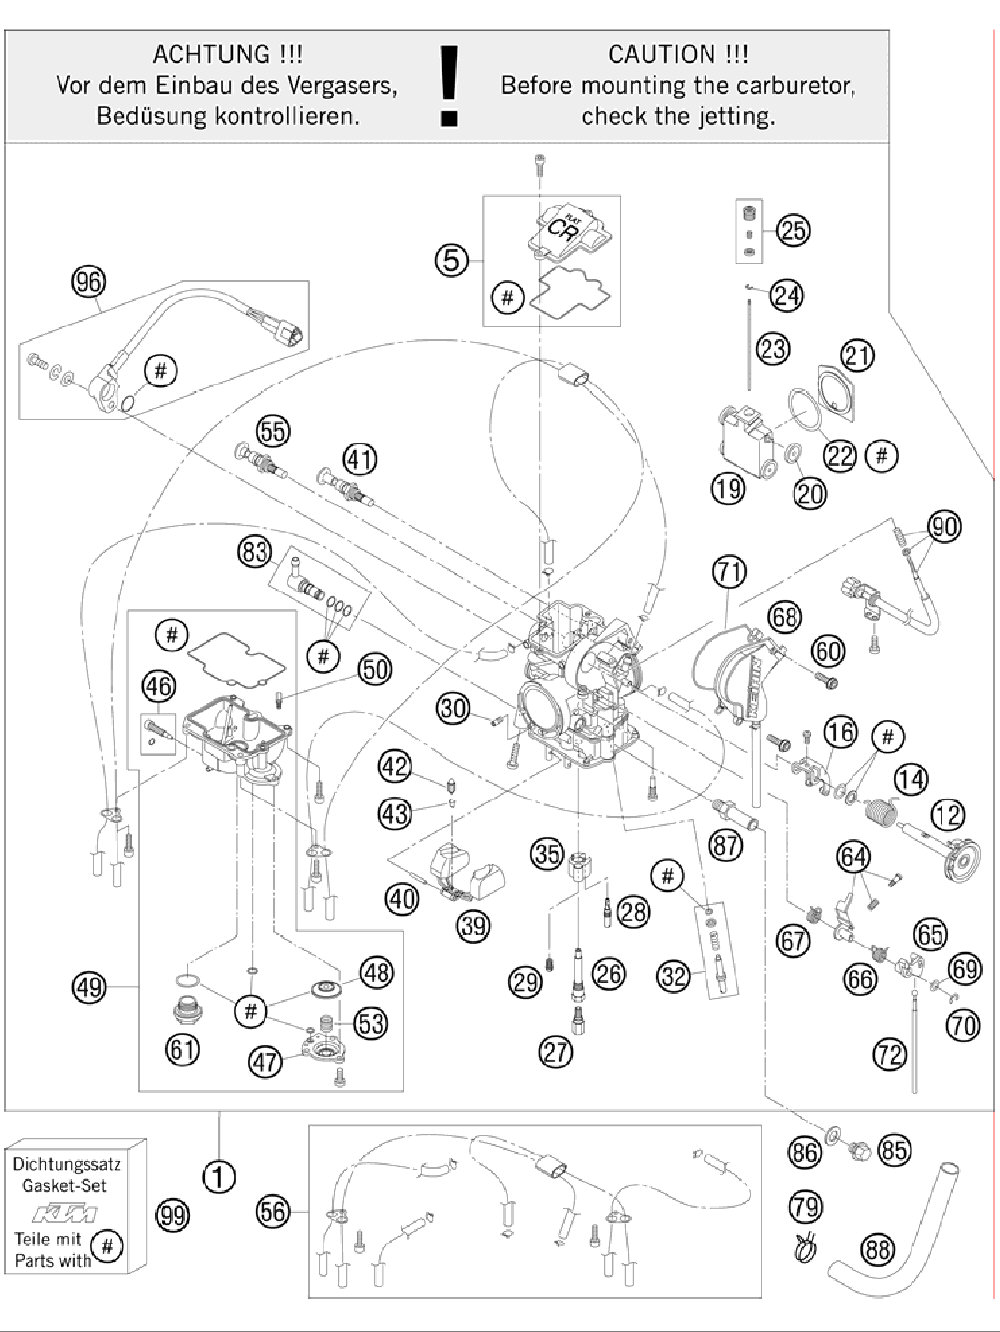 2008 Ktm 450 Engine Diagram Electrical Wiring Diagrams Fiche Parts 125